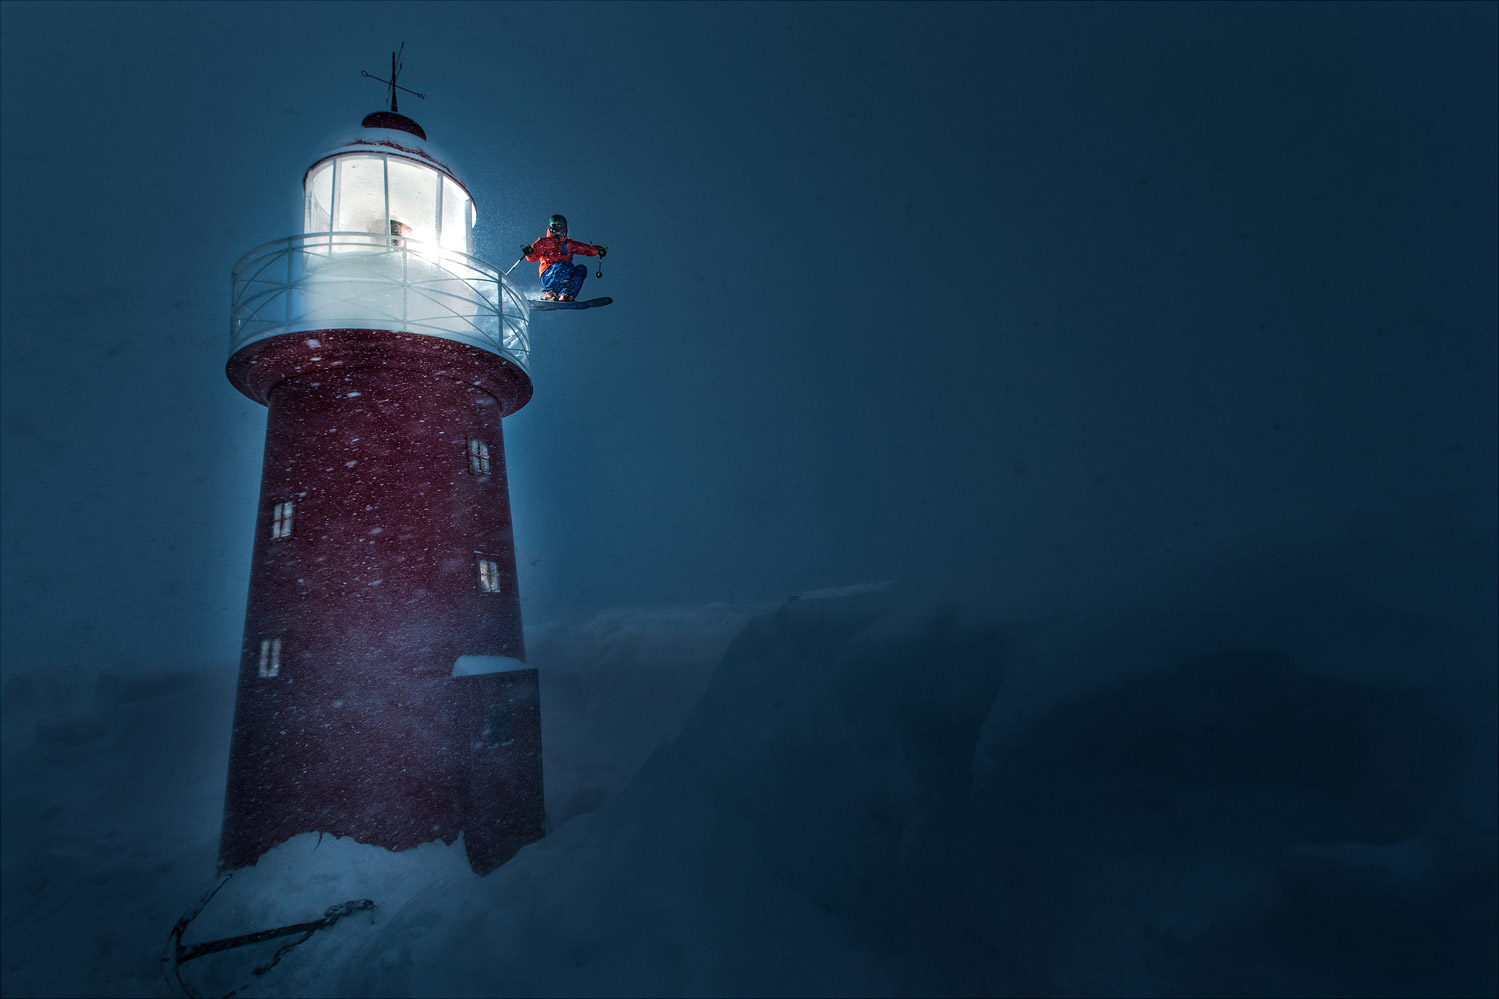 The Lighthouse, © Christoph Jorda, BMFF winner, CVCEPHOTO Contest